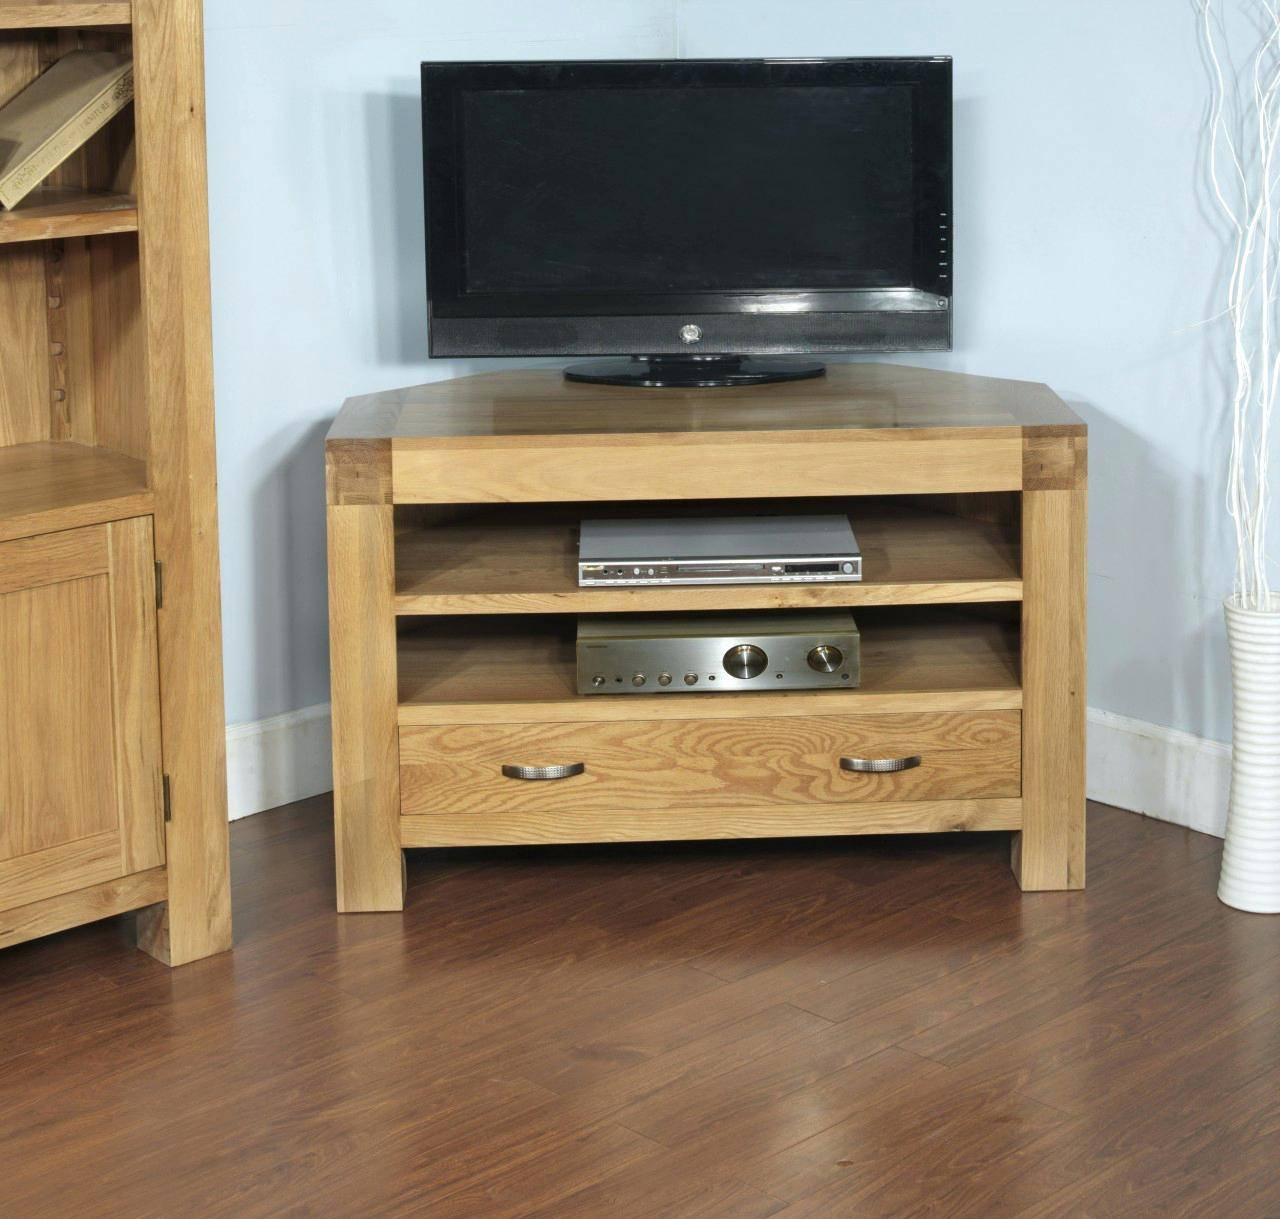 Tv Stand : Small Corner Tv Stands For Flat Screens Uk Bright Wood within Corner Tv Stands With Drawers (Image 14 of 15)